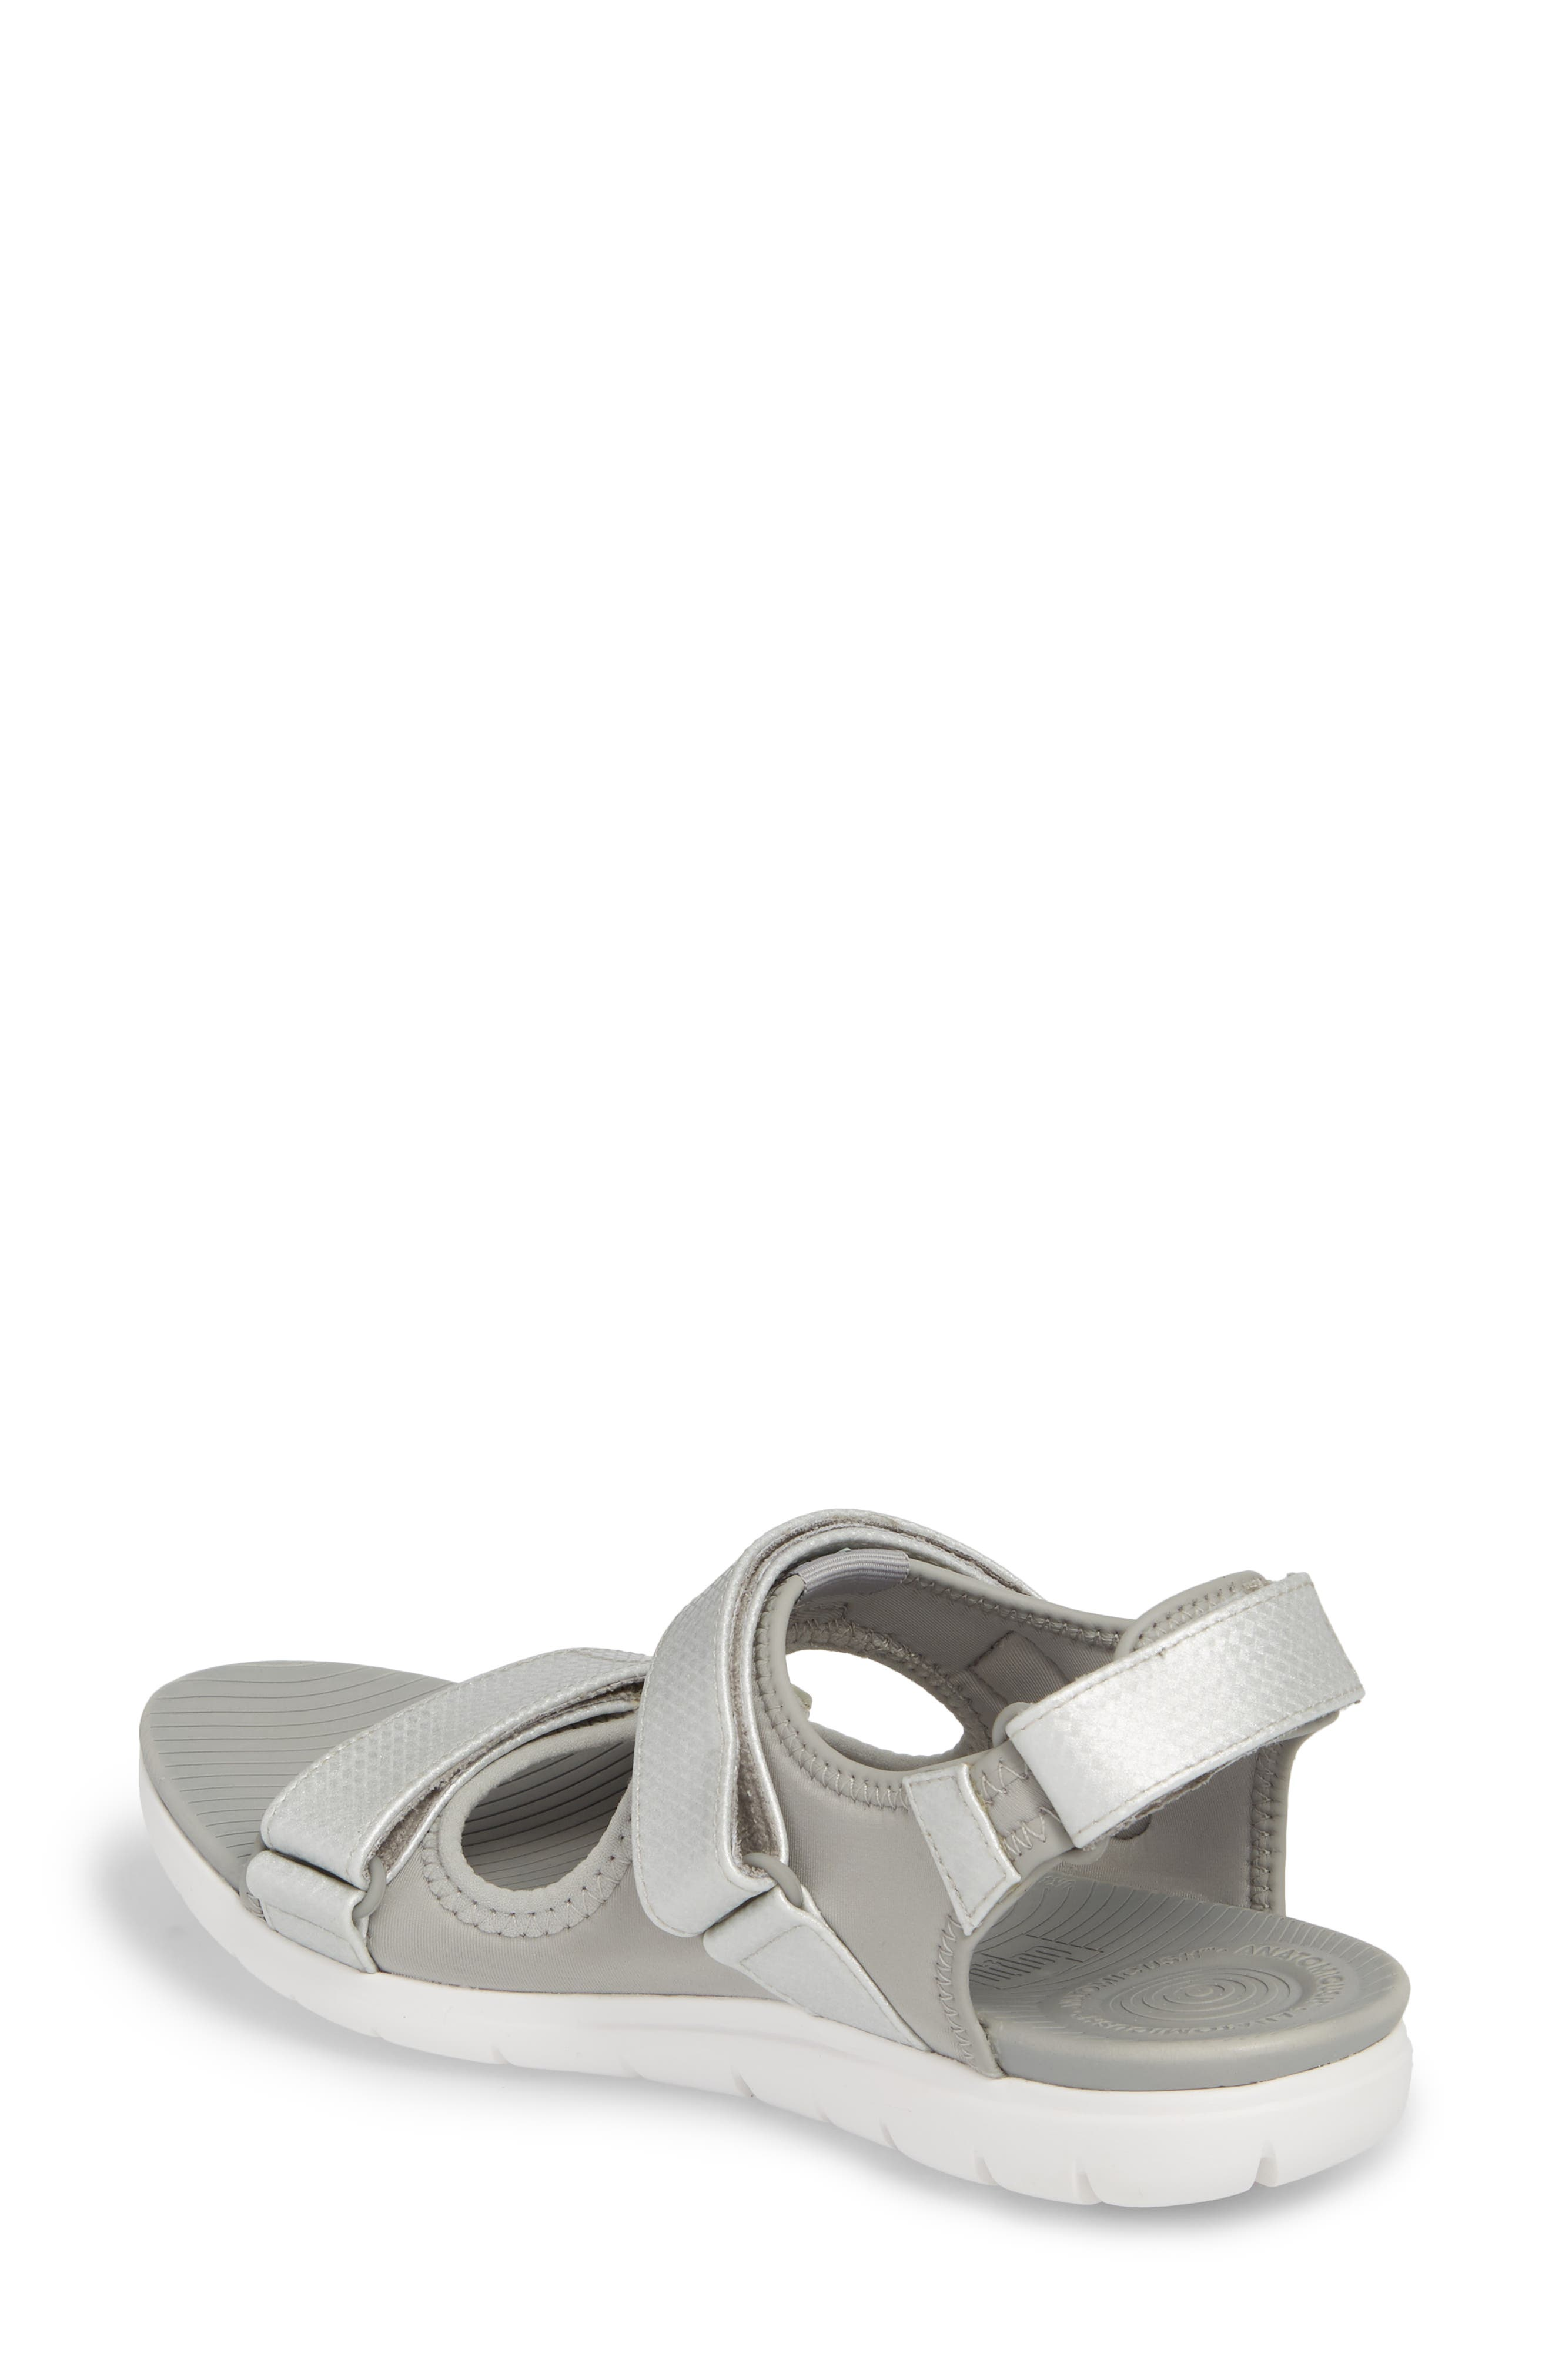 FitfFlop Neoflex<sup>™</sup> Back Strap Sandal,                             Alternate thumbnail 2, color,                             SOFT GREY/ SILVER LEATHER